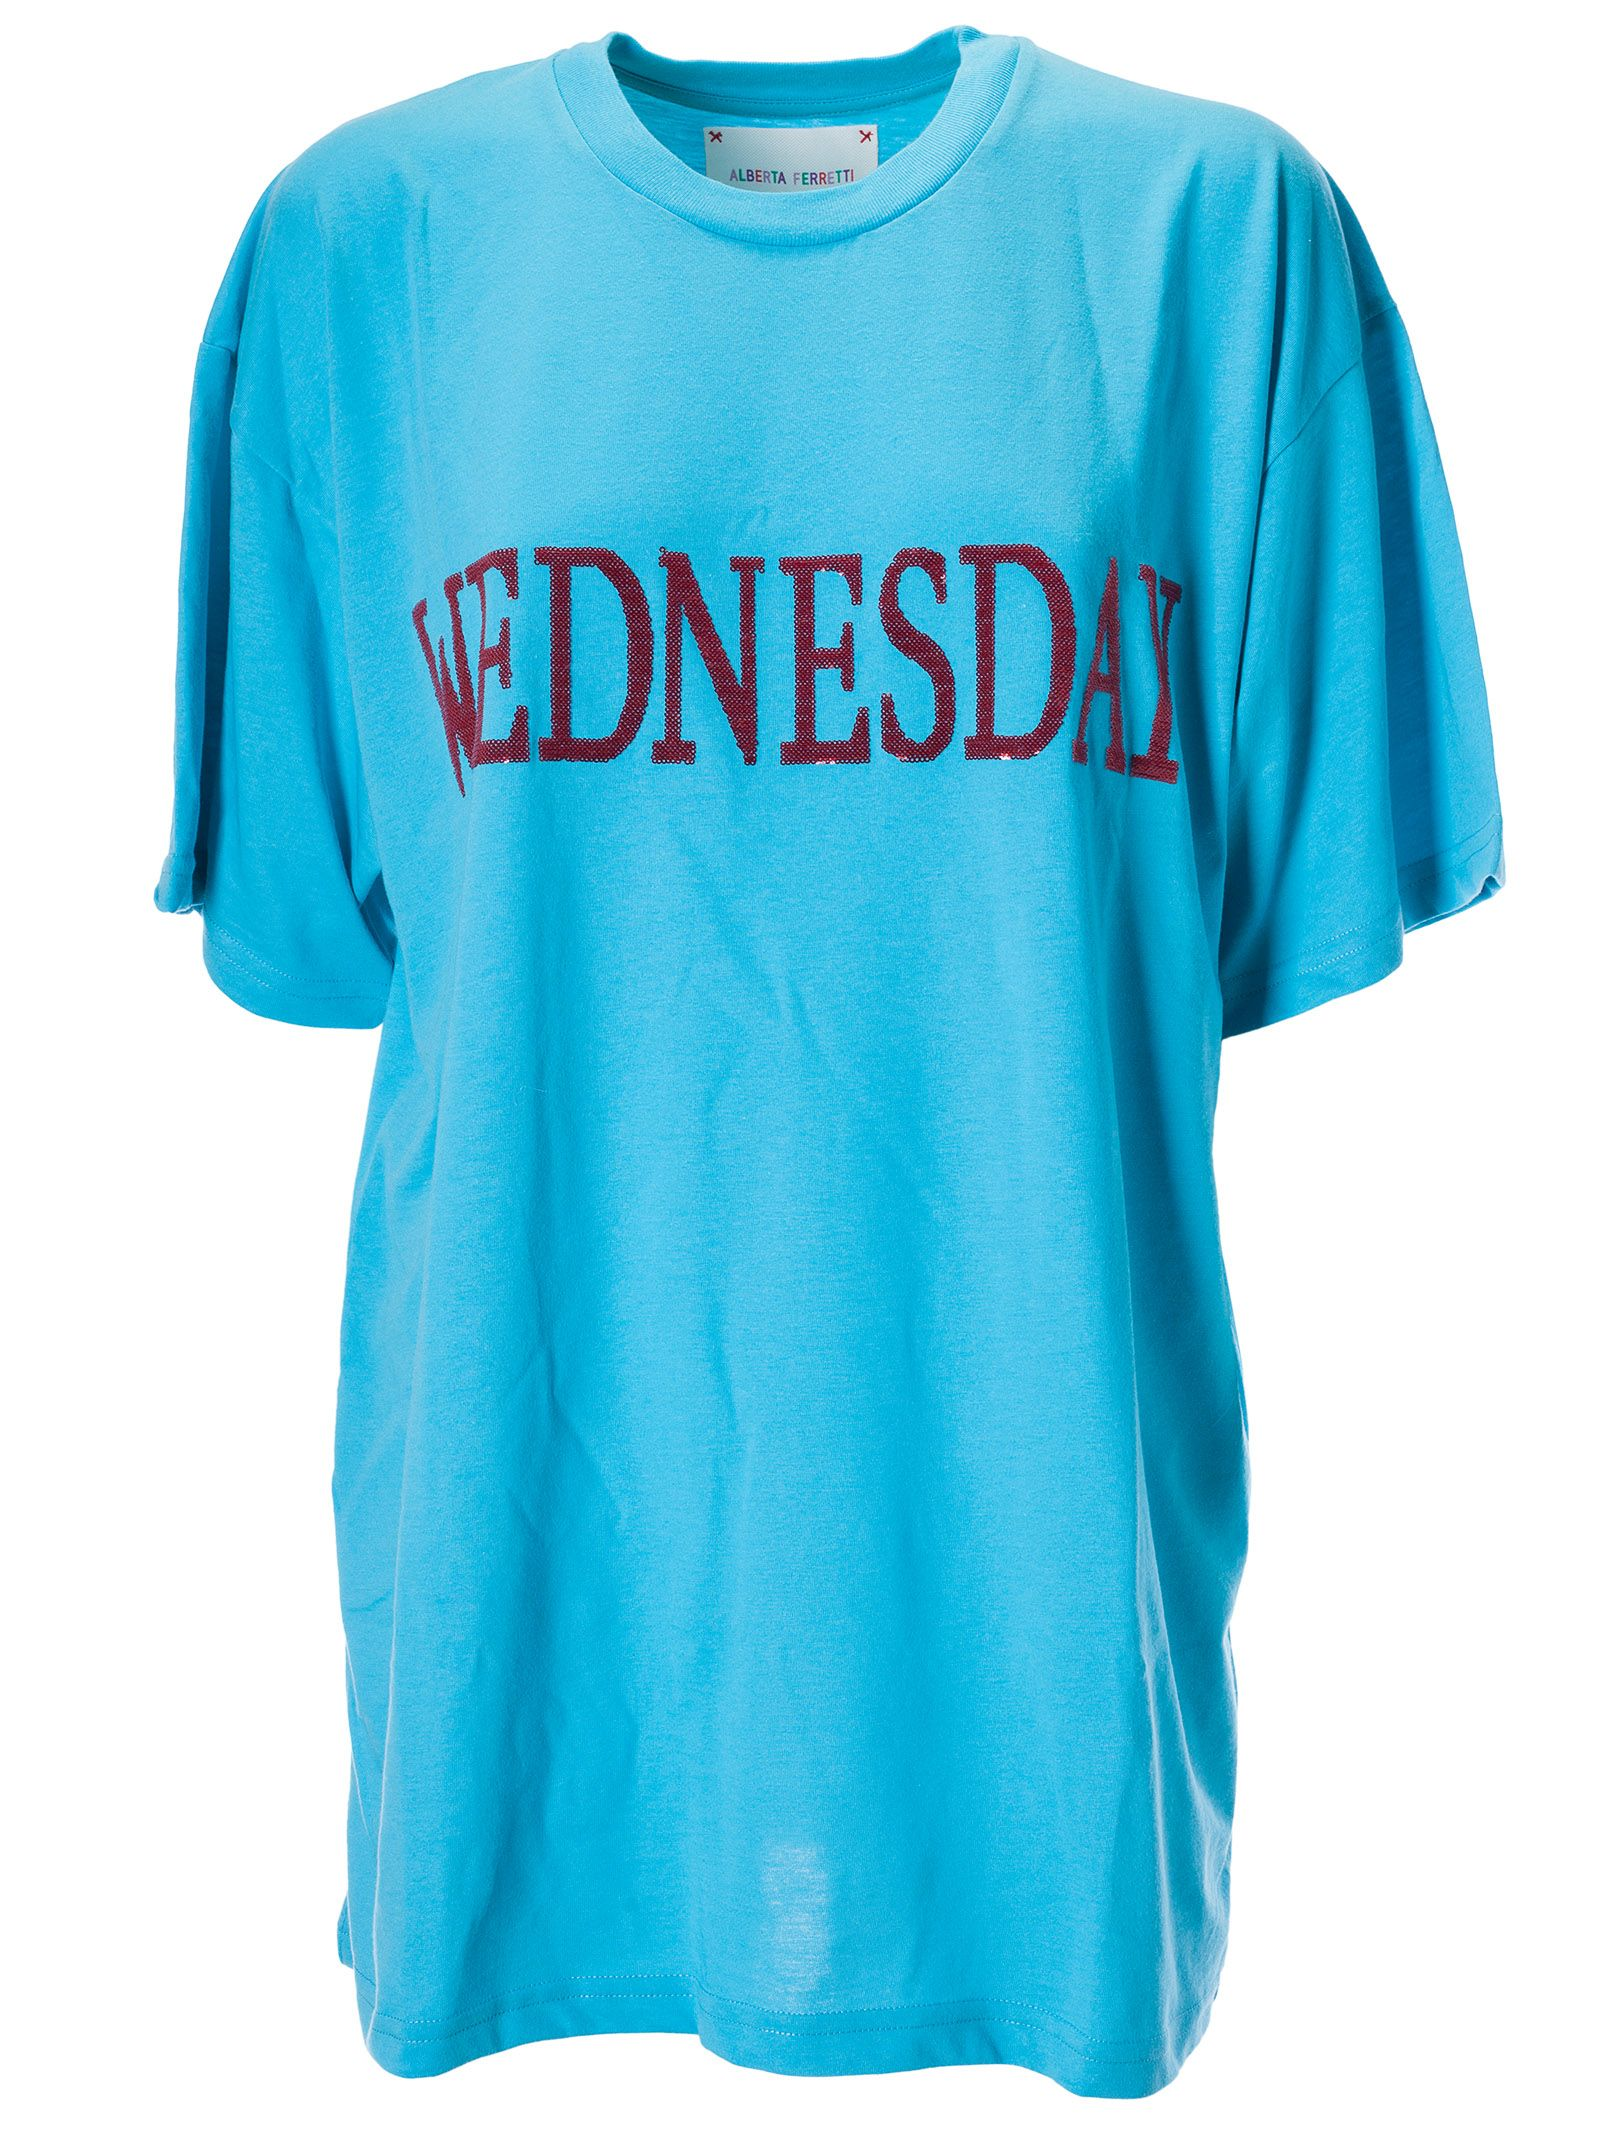 Alberta Ferretti T-shirts WEDNESDAY T-SHIRT